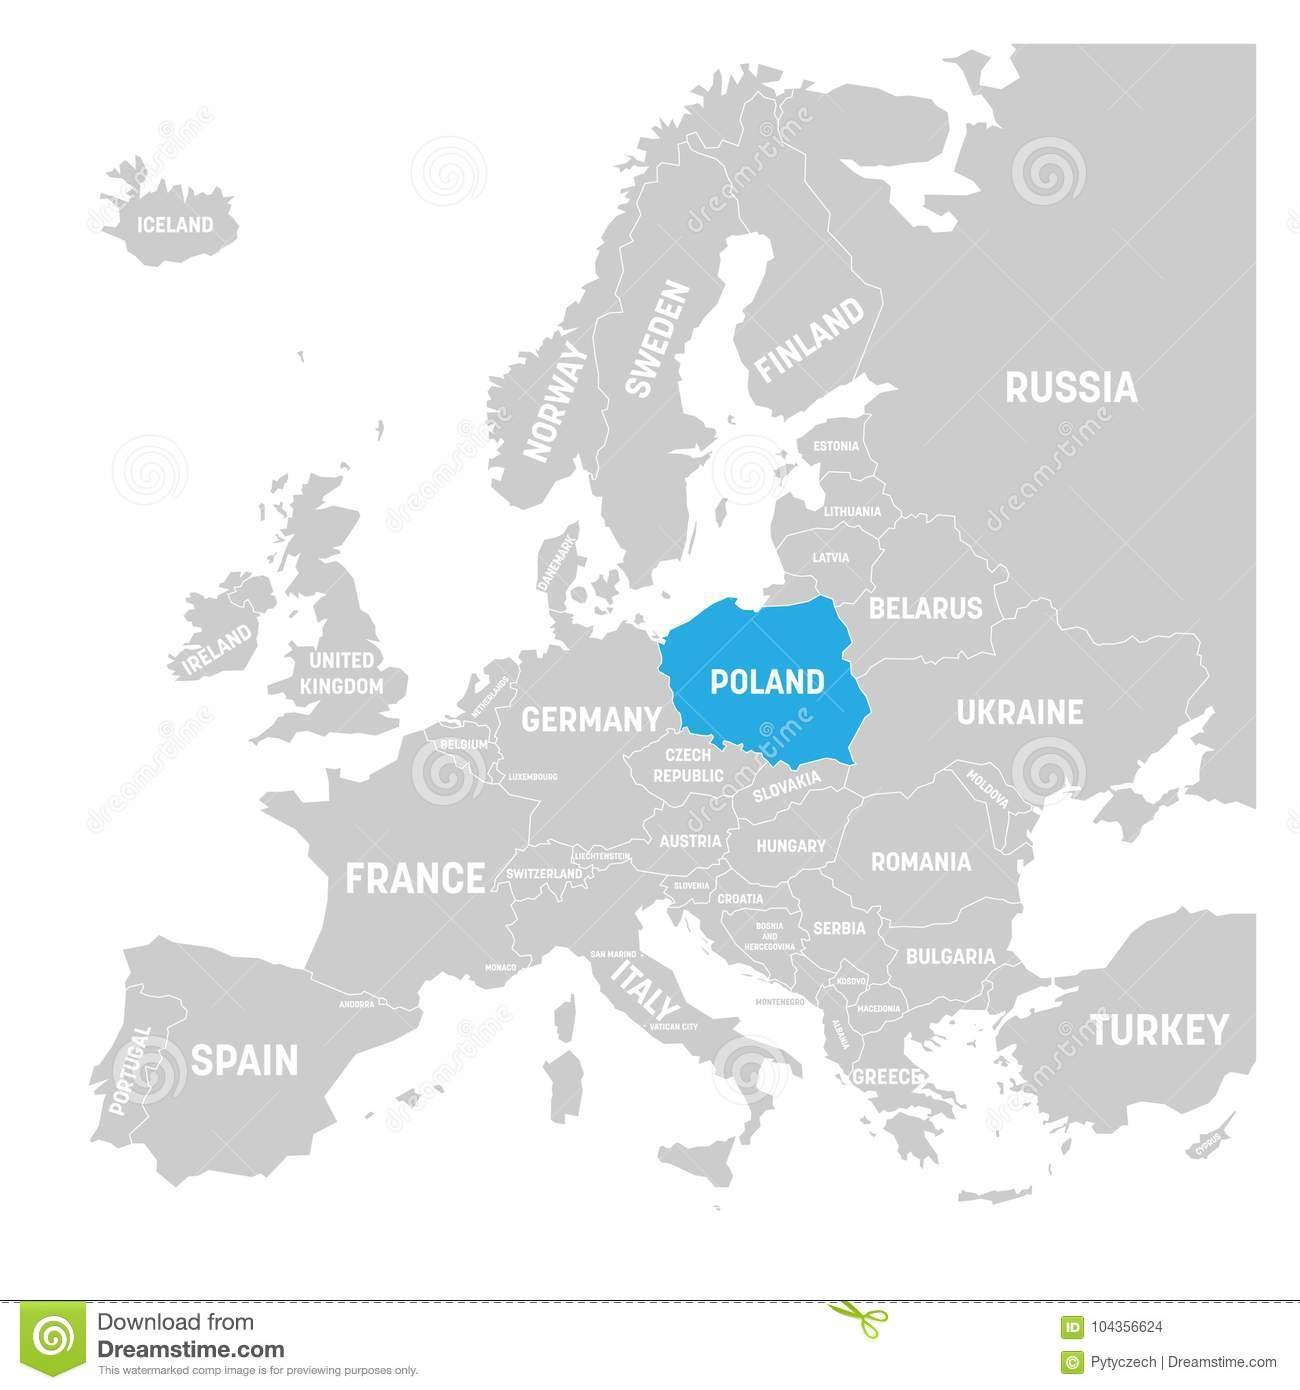 Poland Marked By Blue In Grey Political Map Of Europe Vector